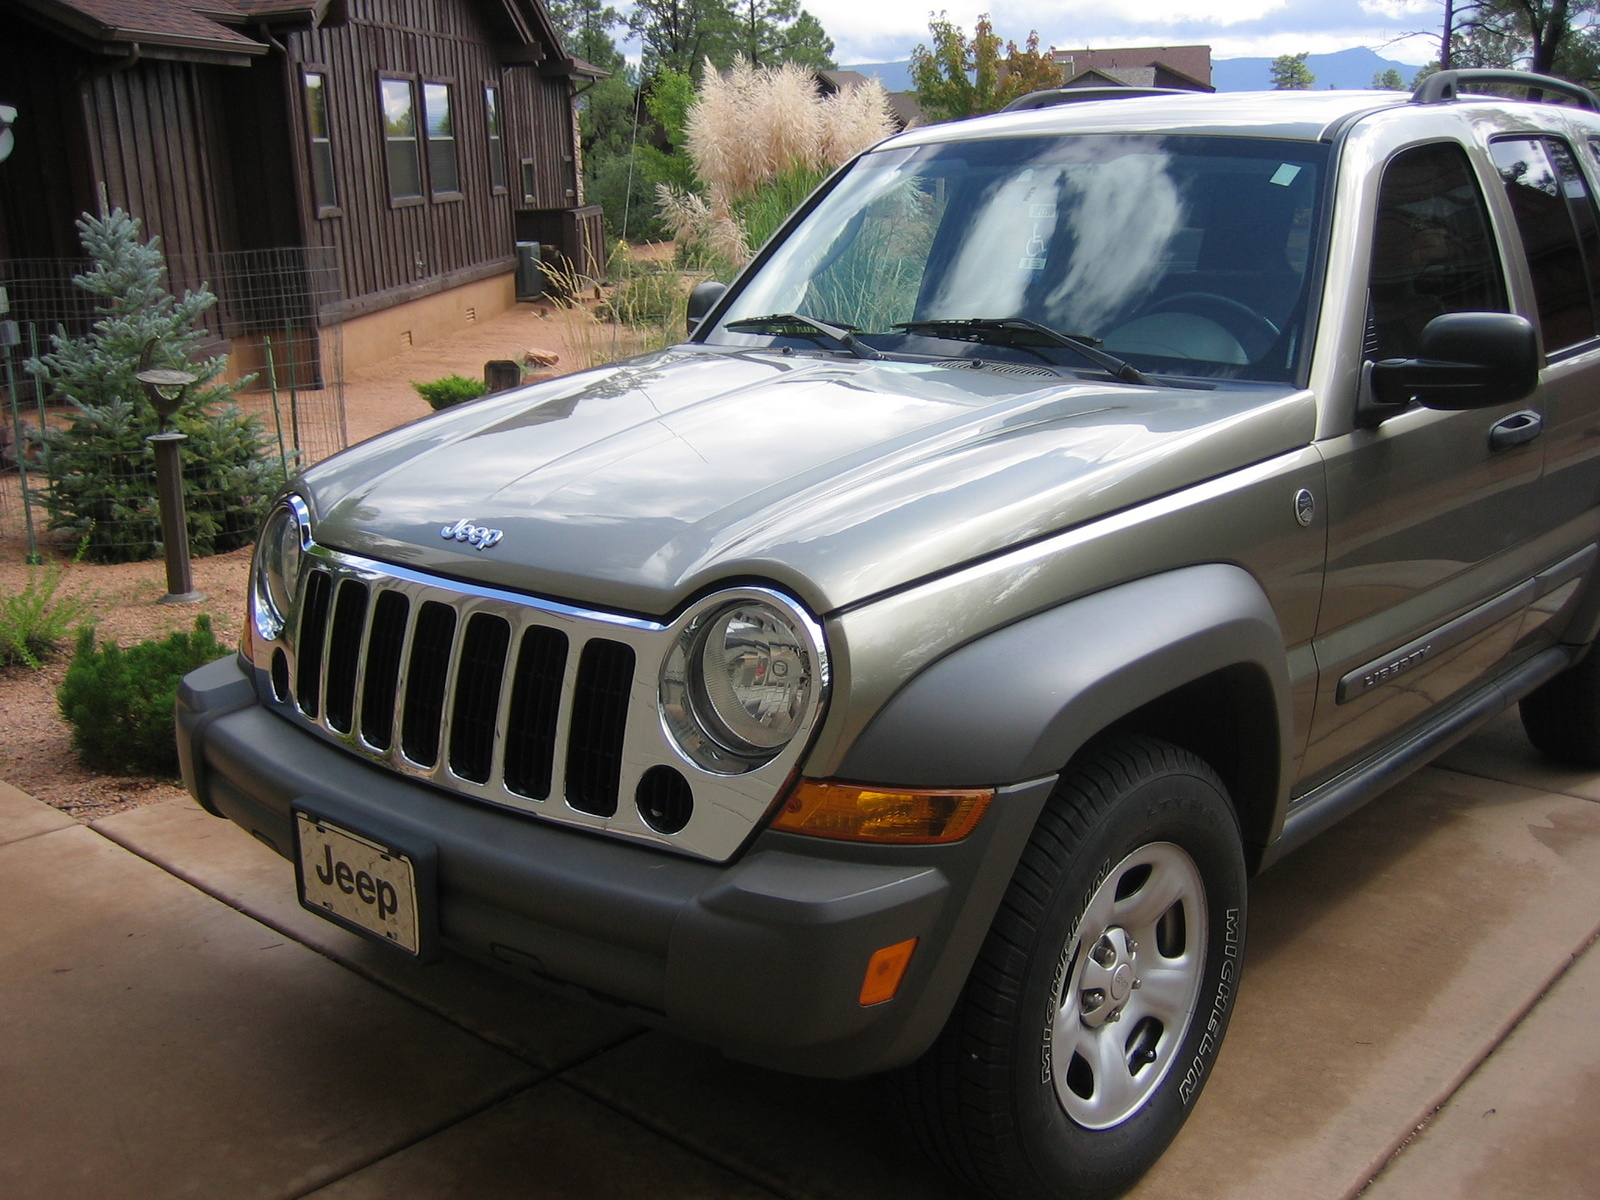 2006 jeep liberty pictures cargurus. Black Bedroom Furniture Sets. Home Design Ideas